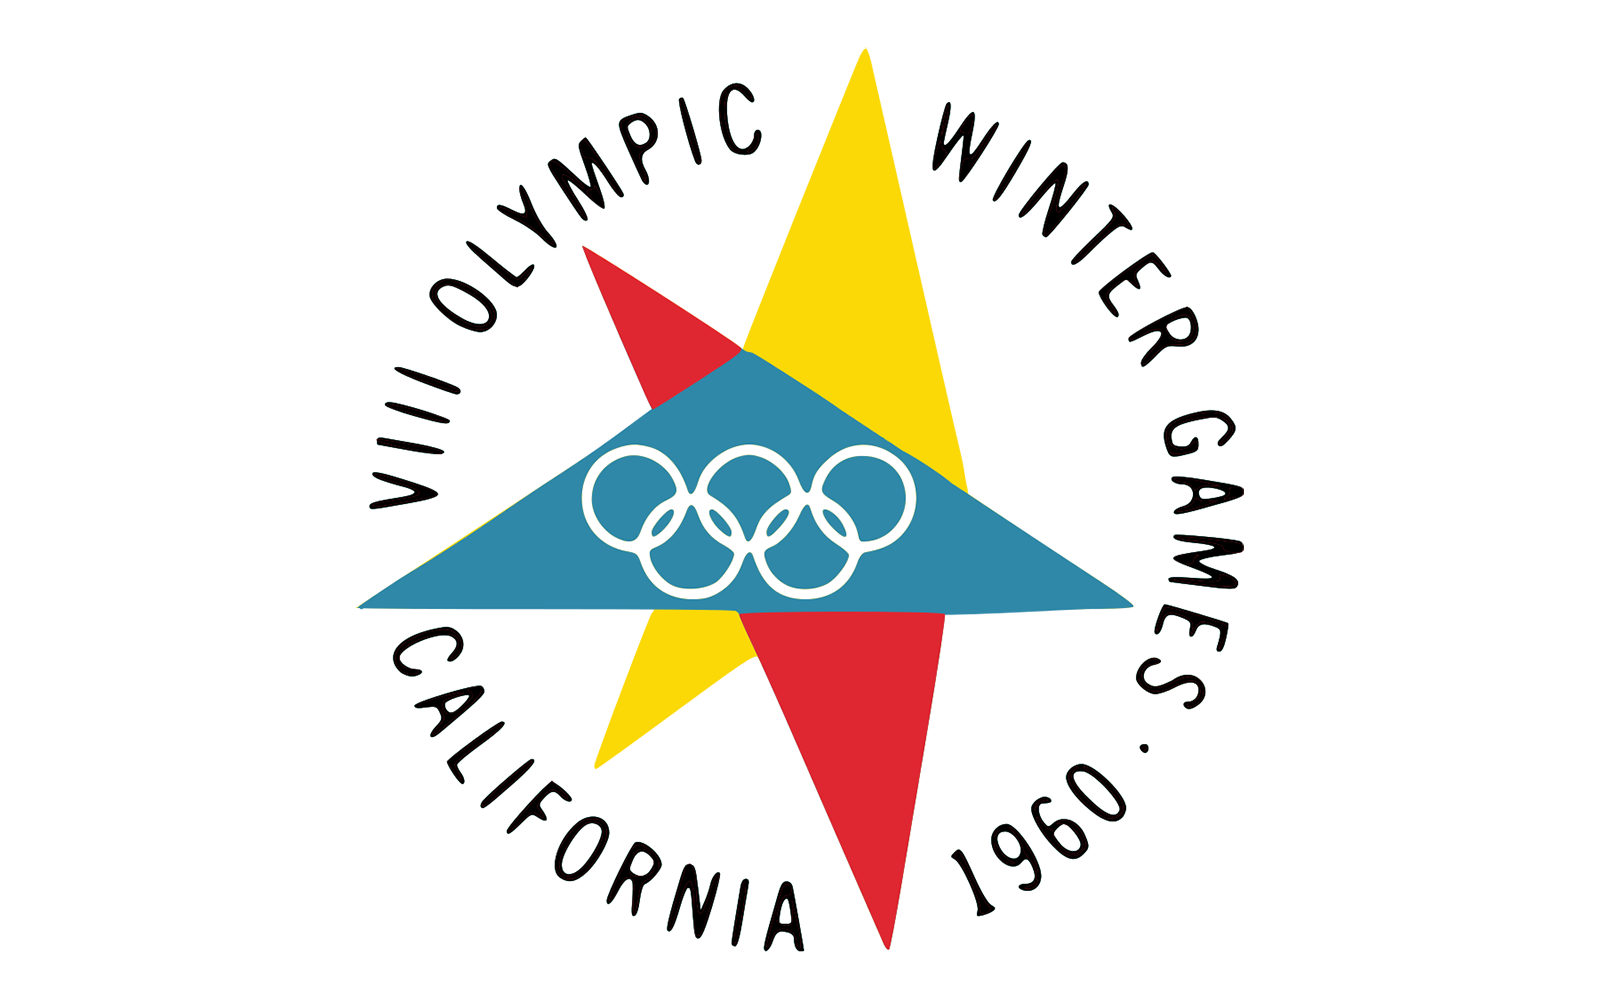 1960_California_Winter_Olympics_logo